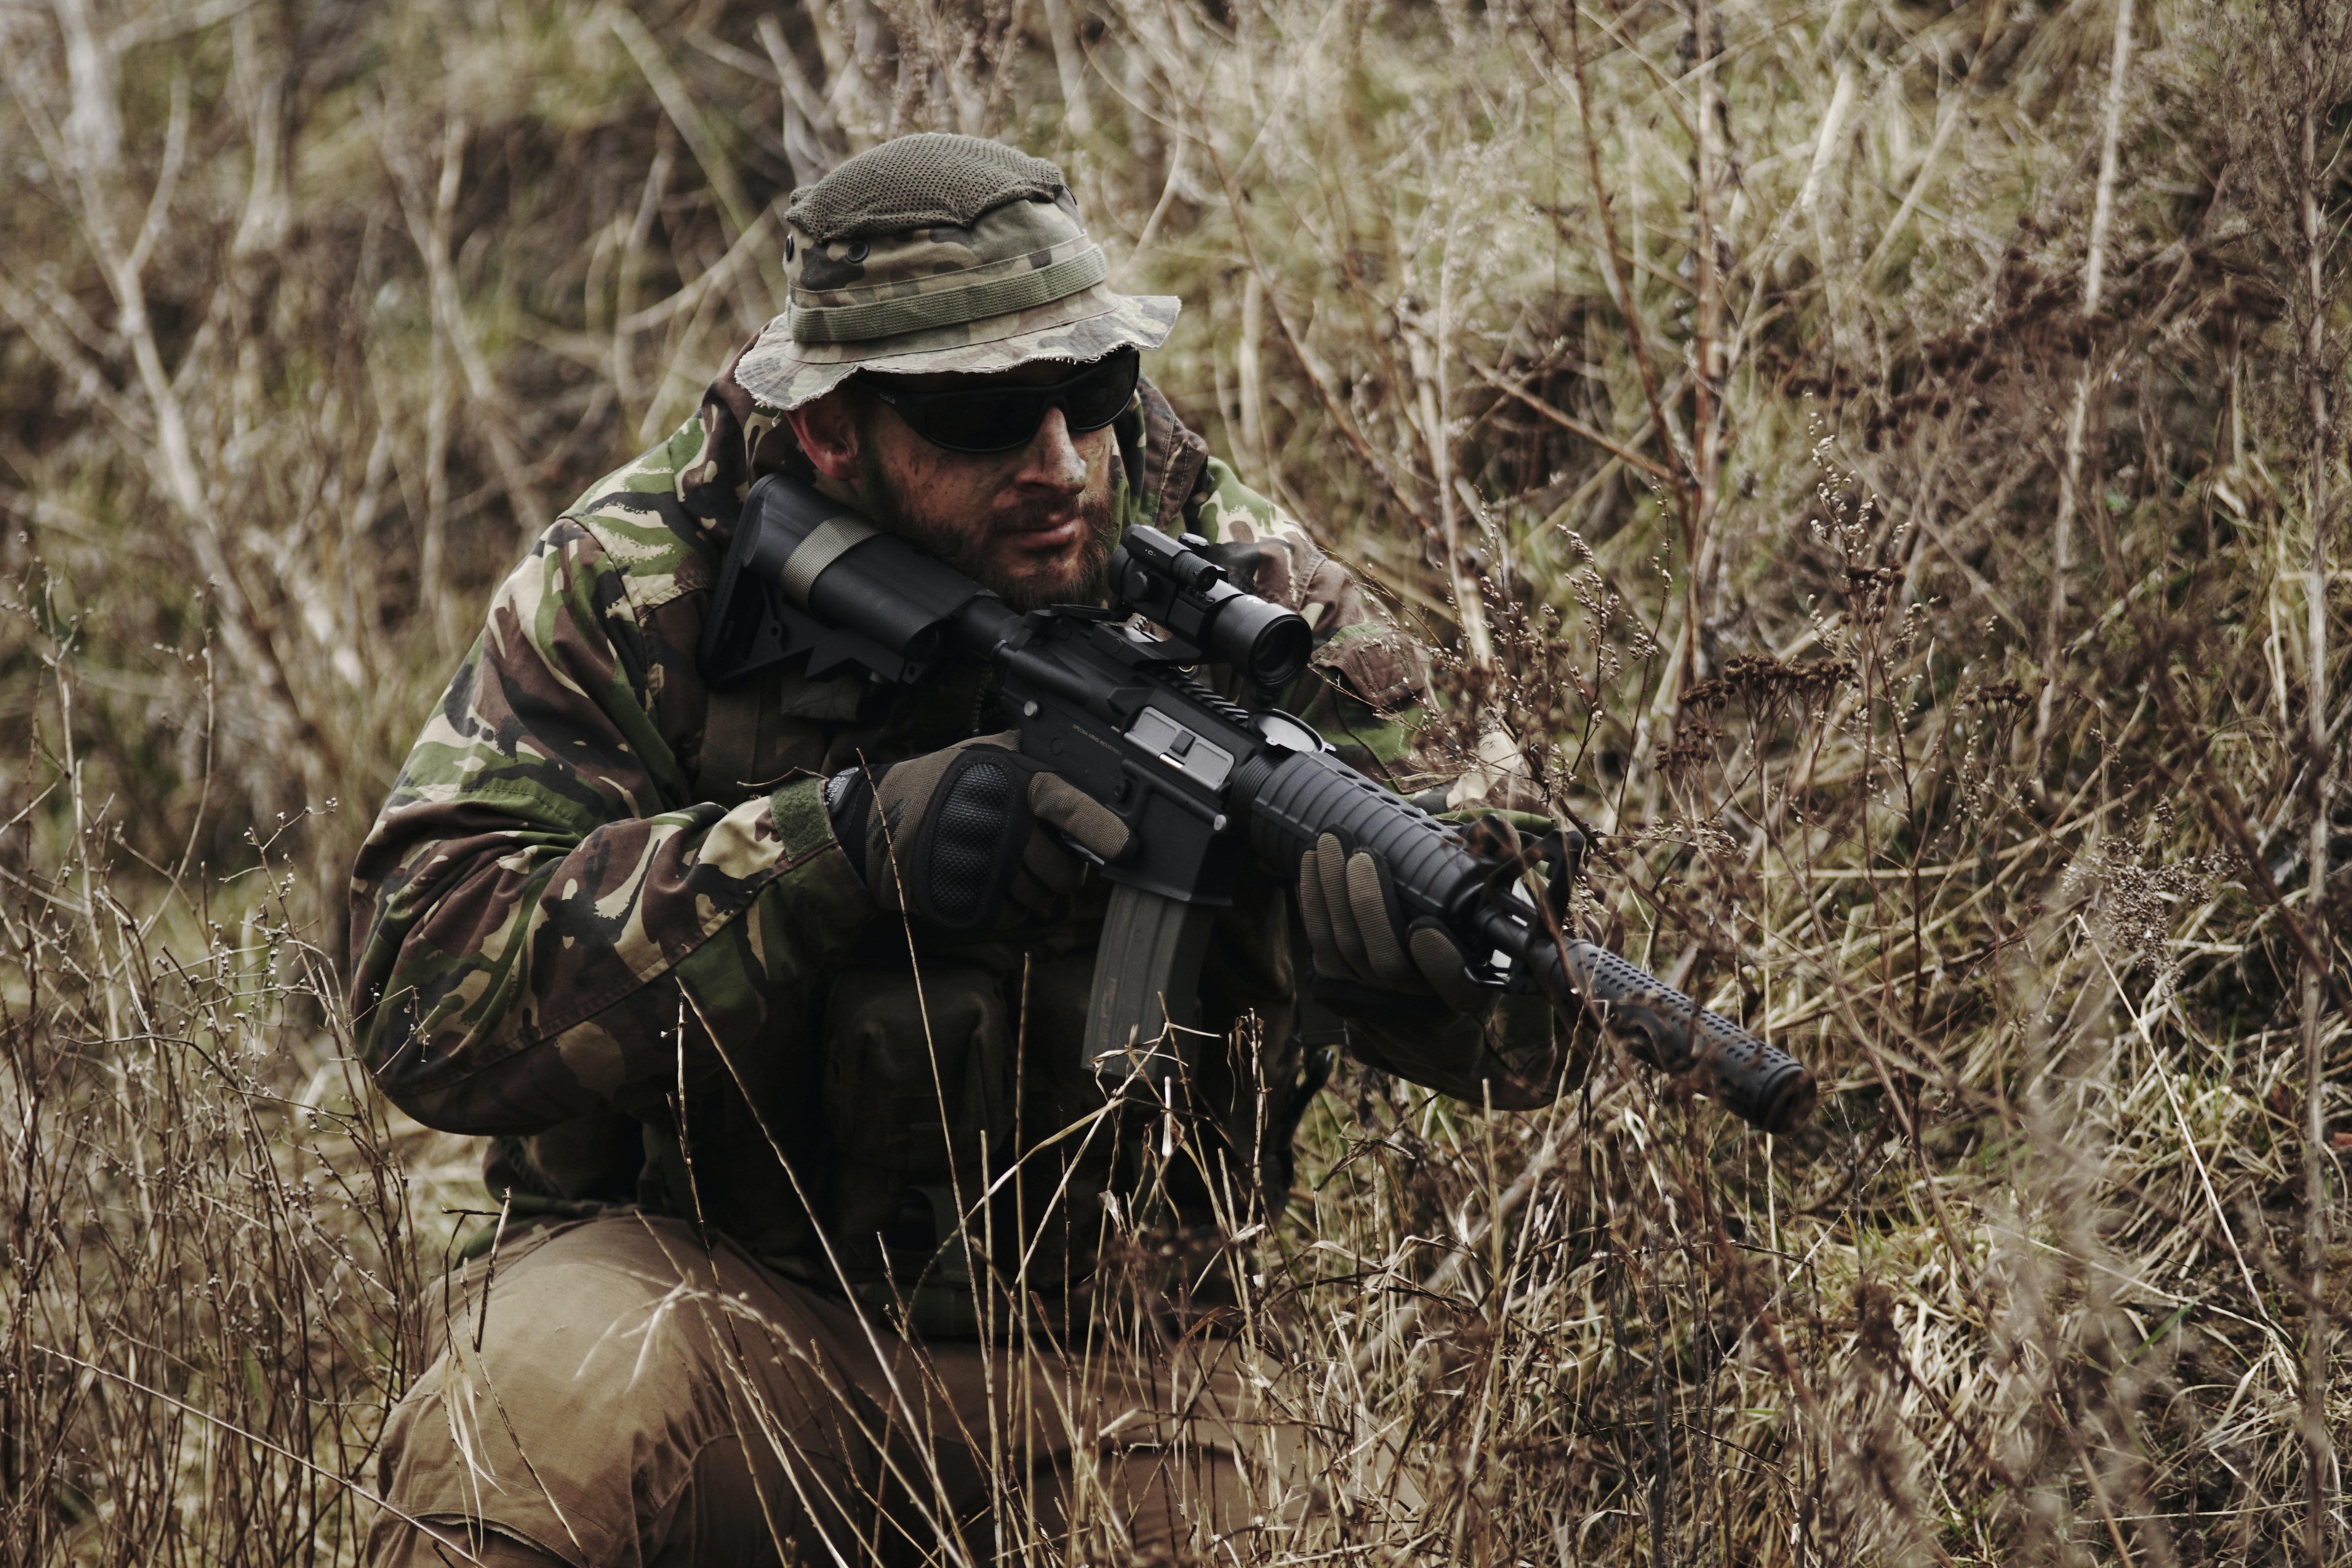 soldier holding black assault rifle